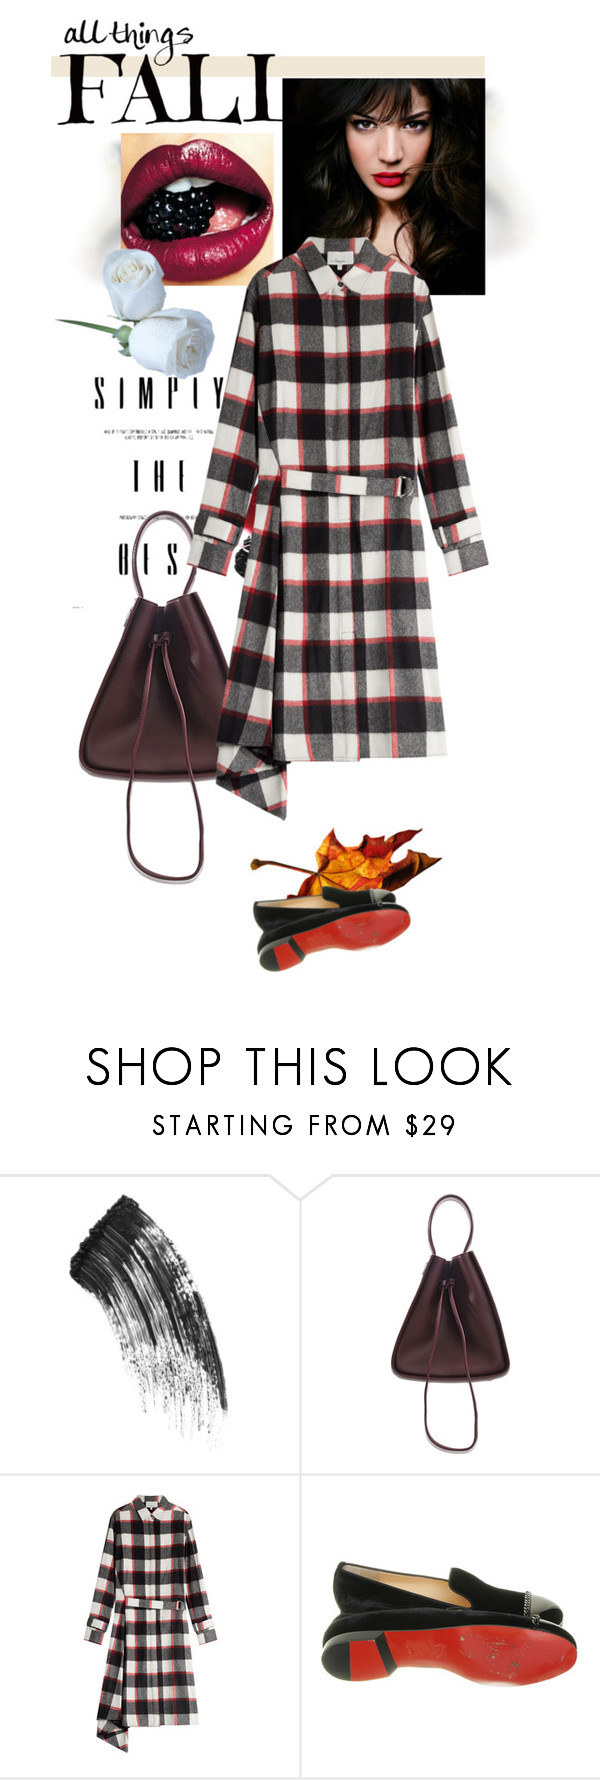 """""""October 17"""" by anny951 ❤ liked on Polyvore featuring Charlotte Tilbury, IVI, 3.1 Phillip Lim and Christian Louboutin"""